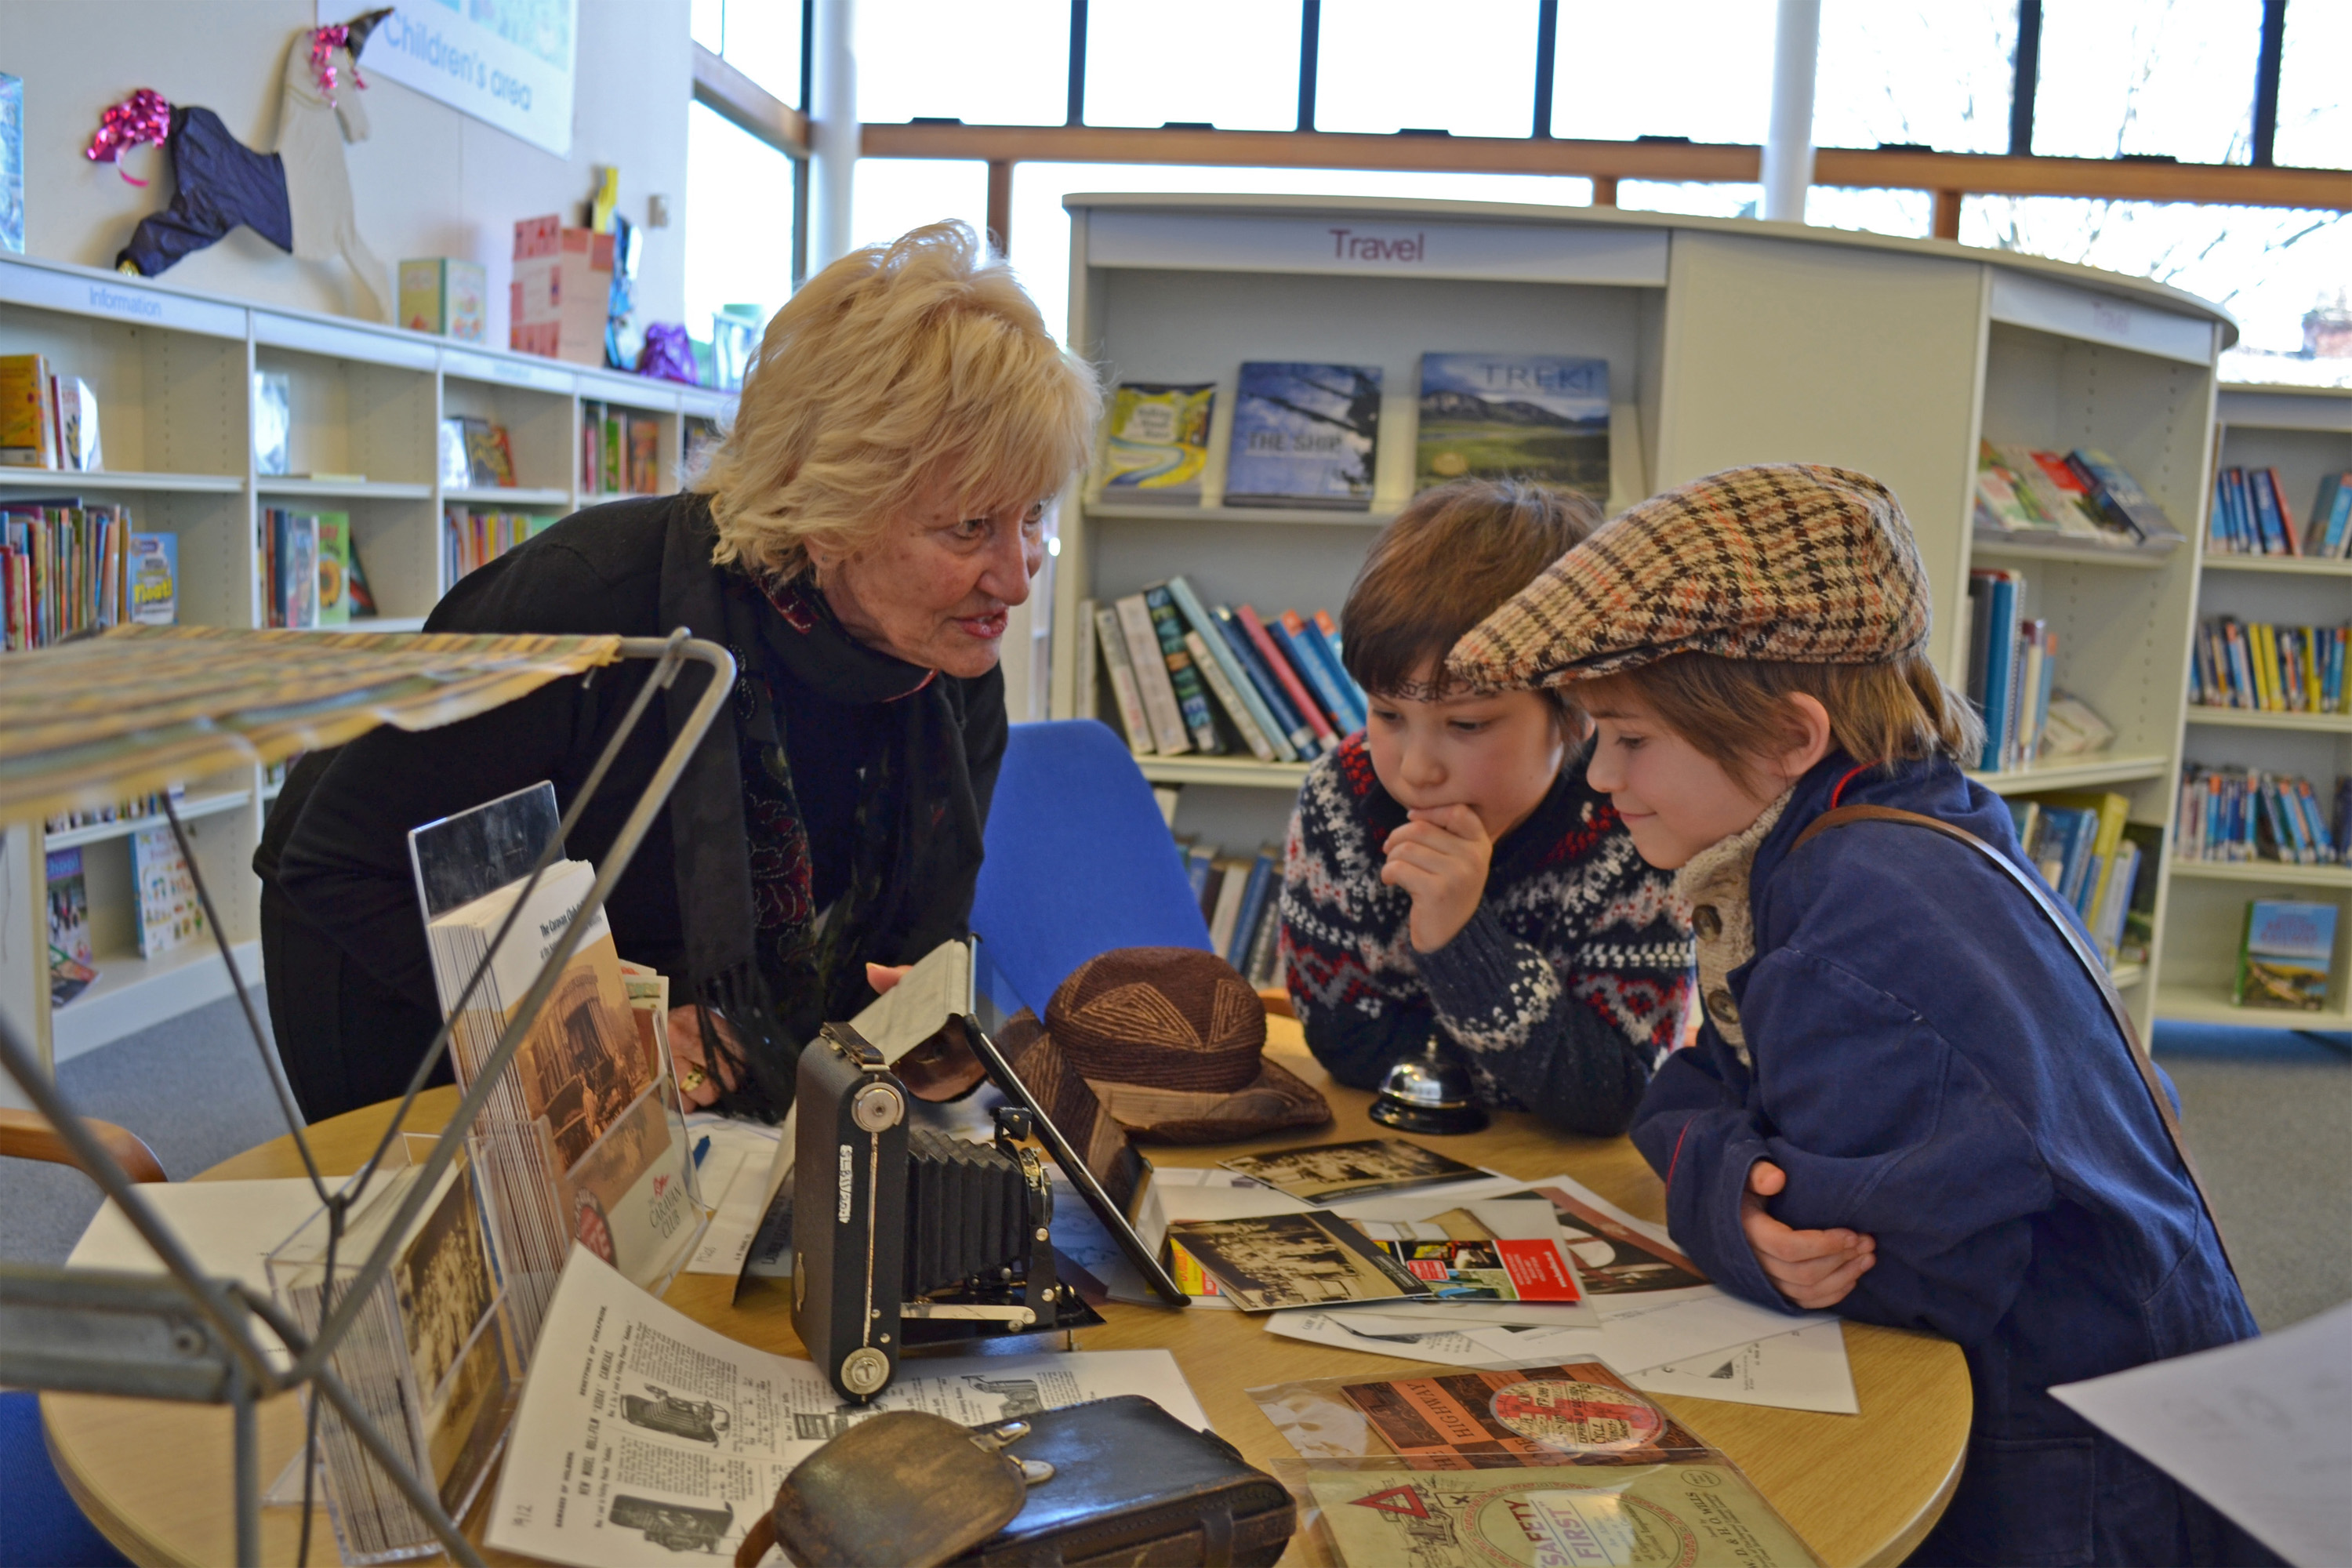 Lady with two boys looking at historic items